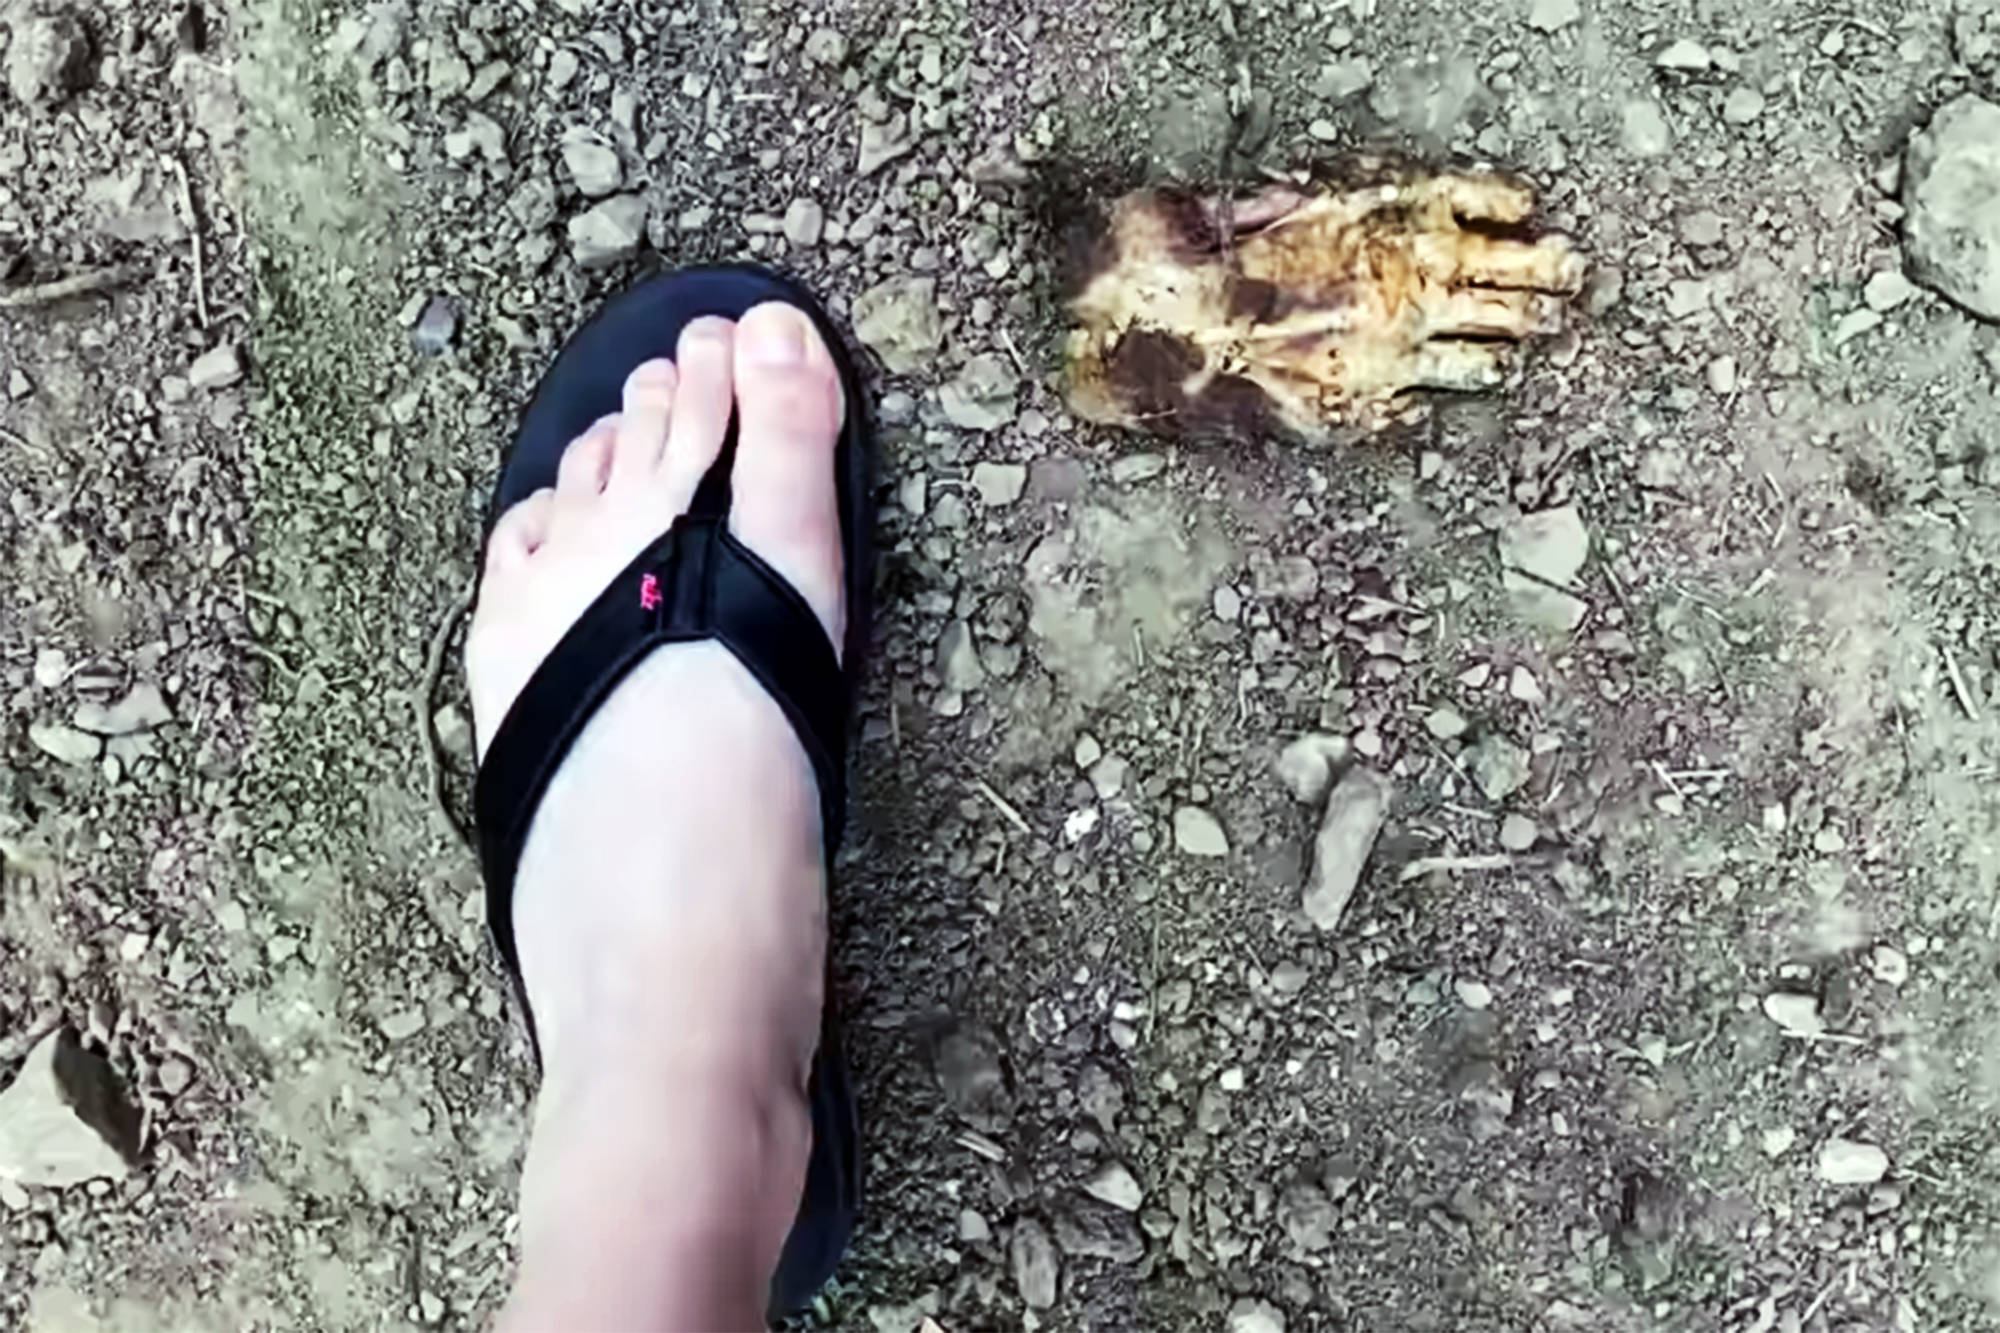 Brandi Hansen said she was disheartened to find dozens of severed, declawed bear paws dumped in a culvert alongside a North Shuswap road on Sunday, May 23, 2021. (Contributed)